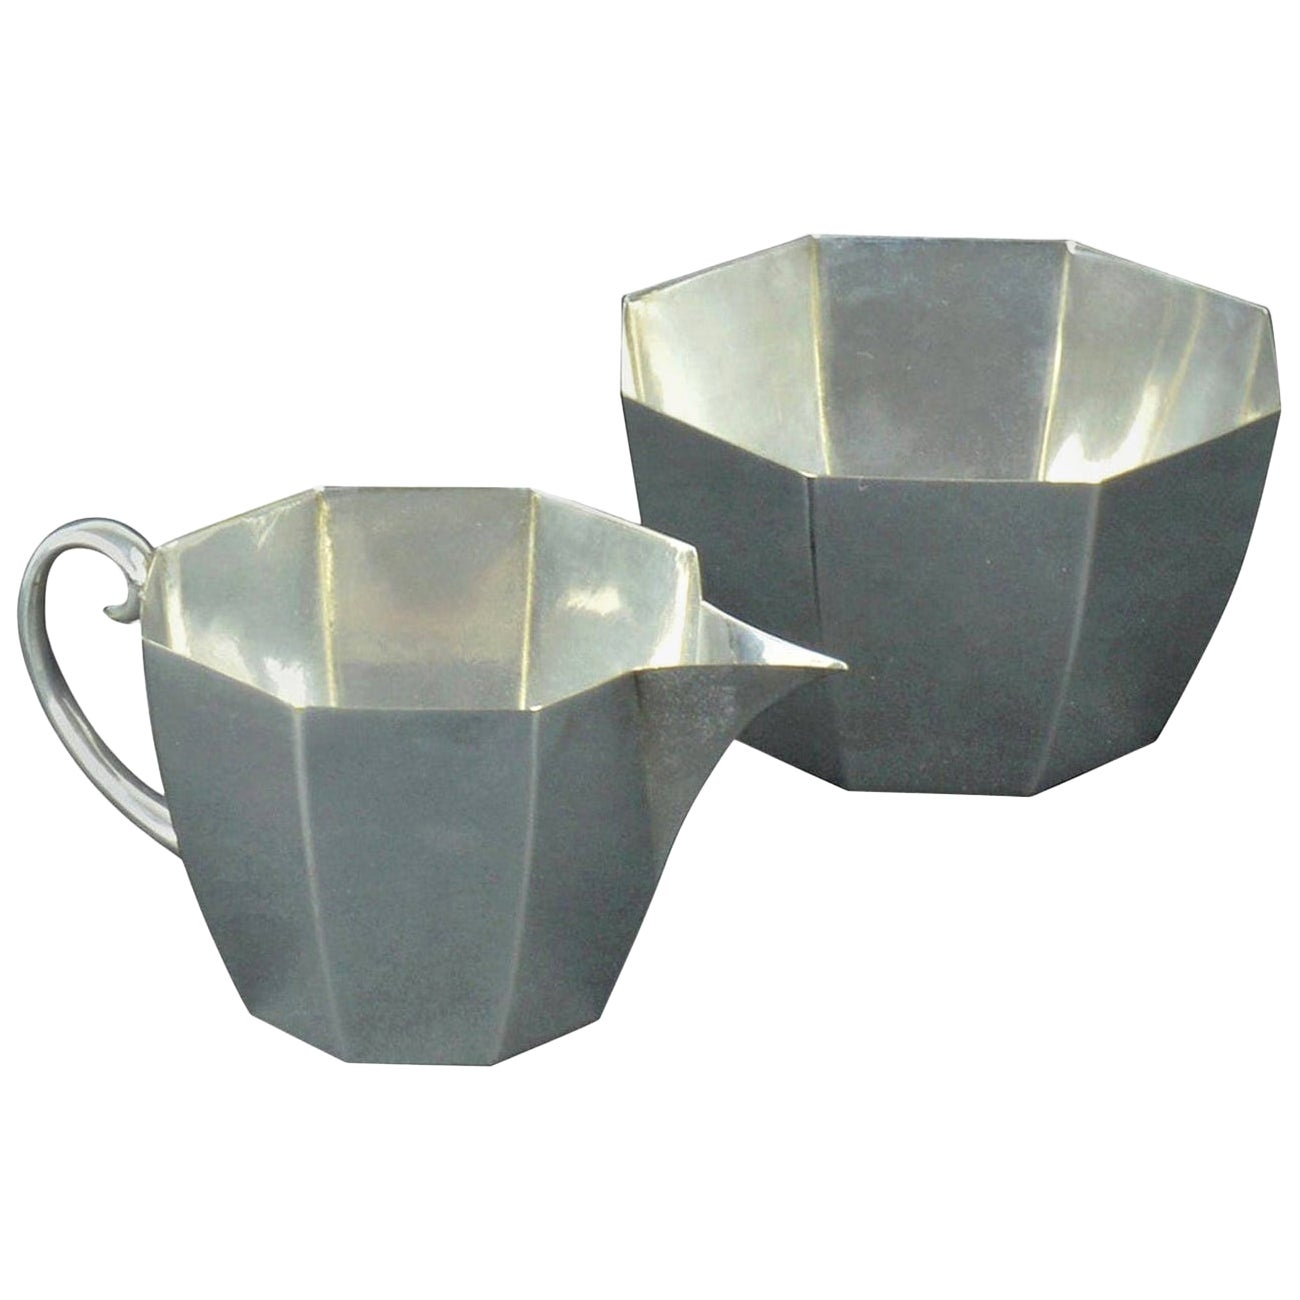 Secessionist Style Silver Plated Milk and Sugar by WMF, German, circa 1900